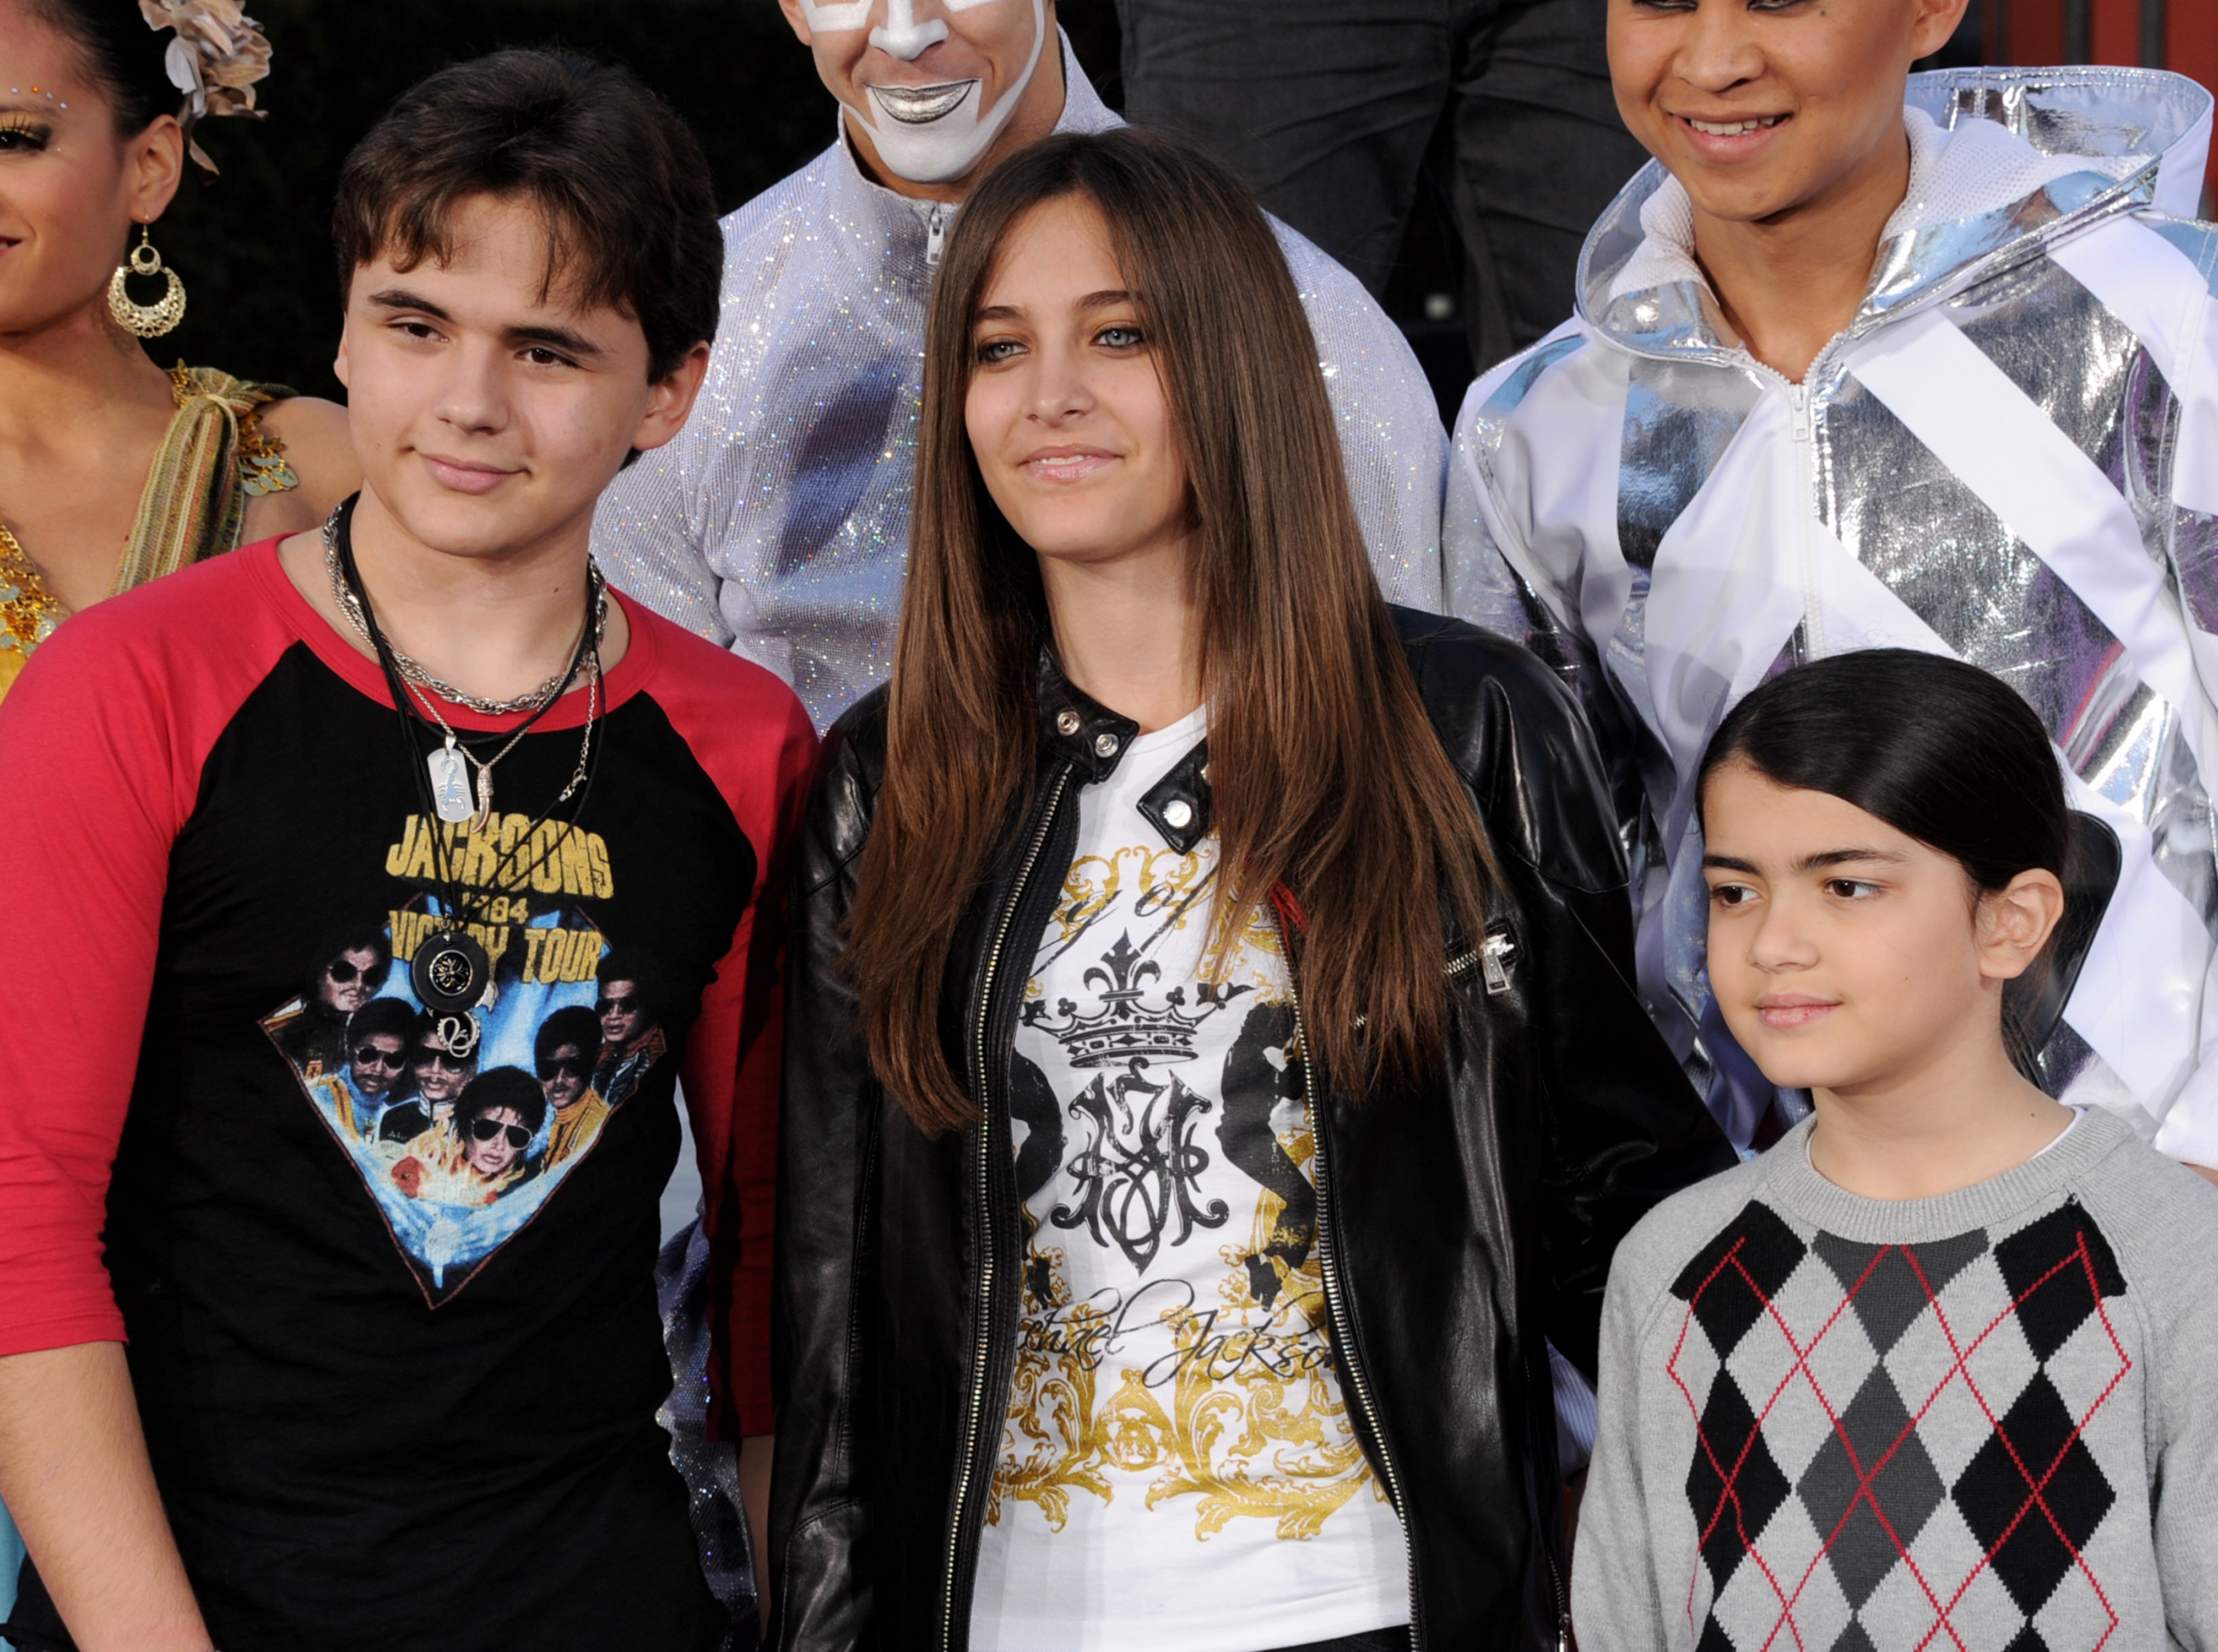 Prince Jackson, Paris Jackson and Blanket Jackson appear at the Michael Jackson Hand and Footprint ceremony at Grauman's Chinese Theatre. | Photo: GettyImages